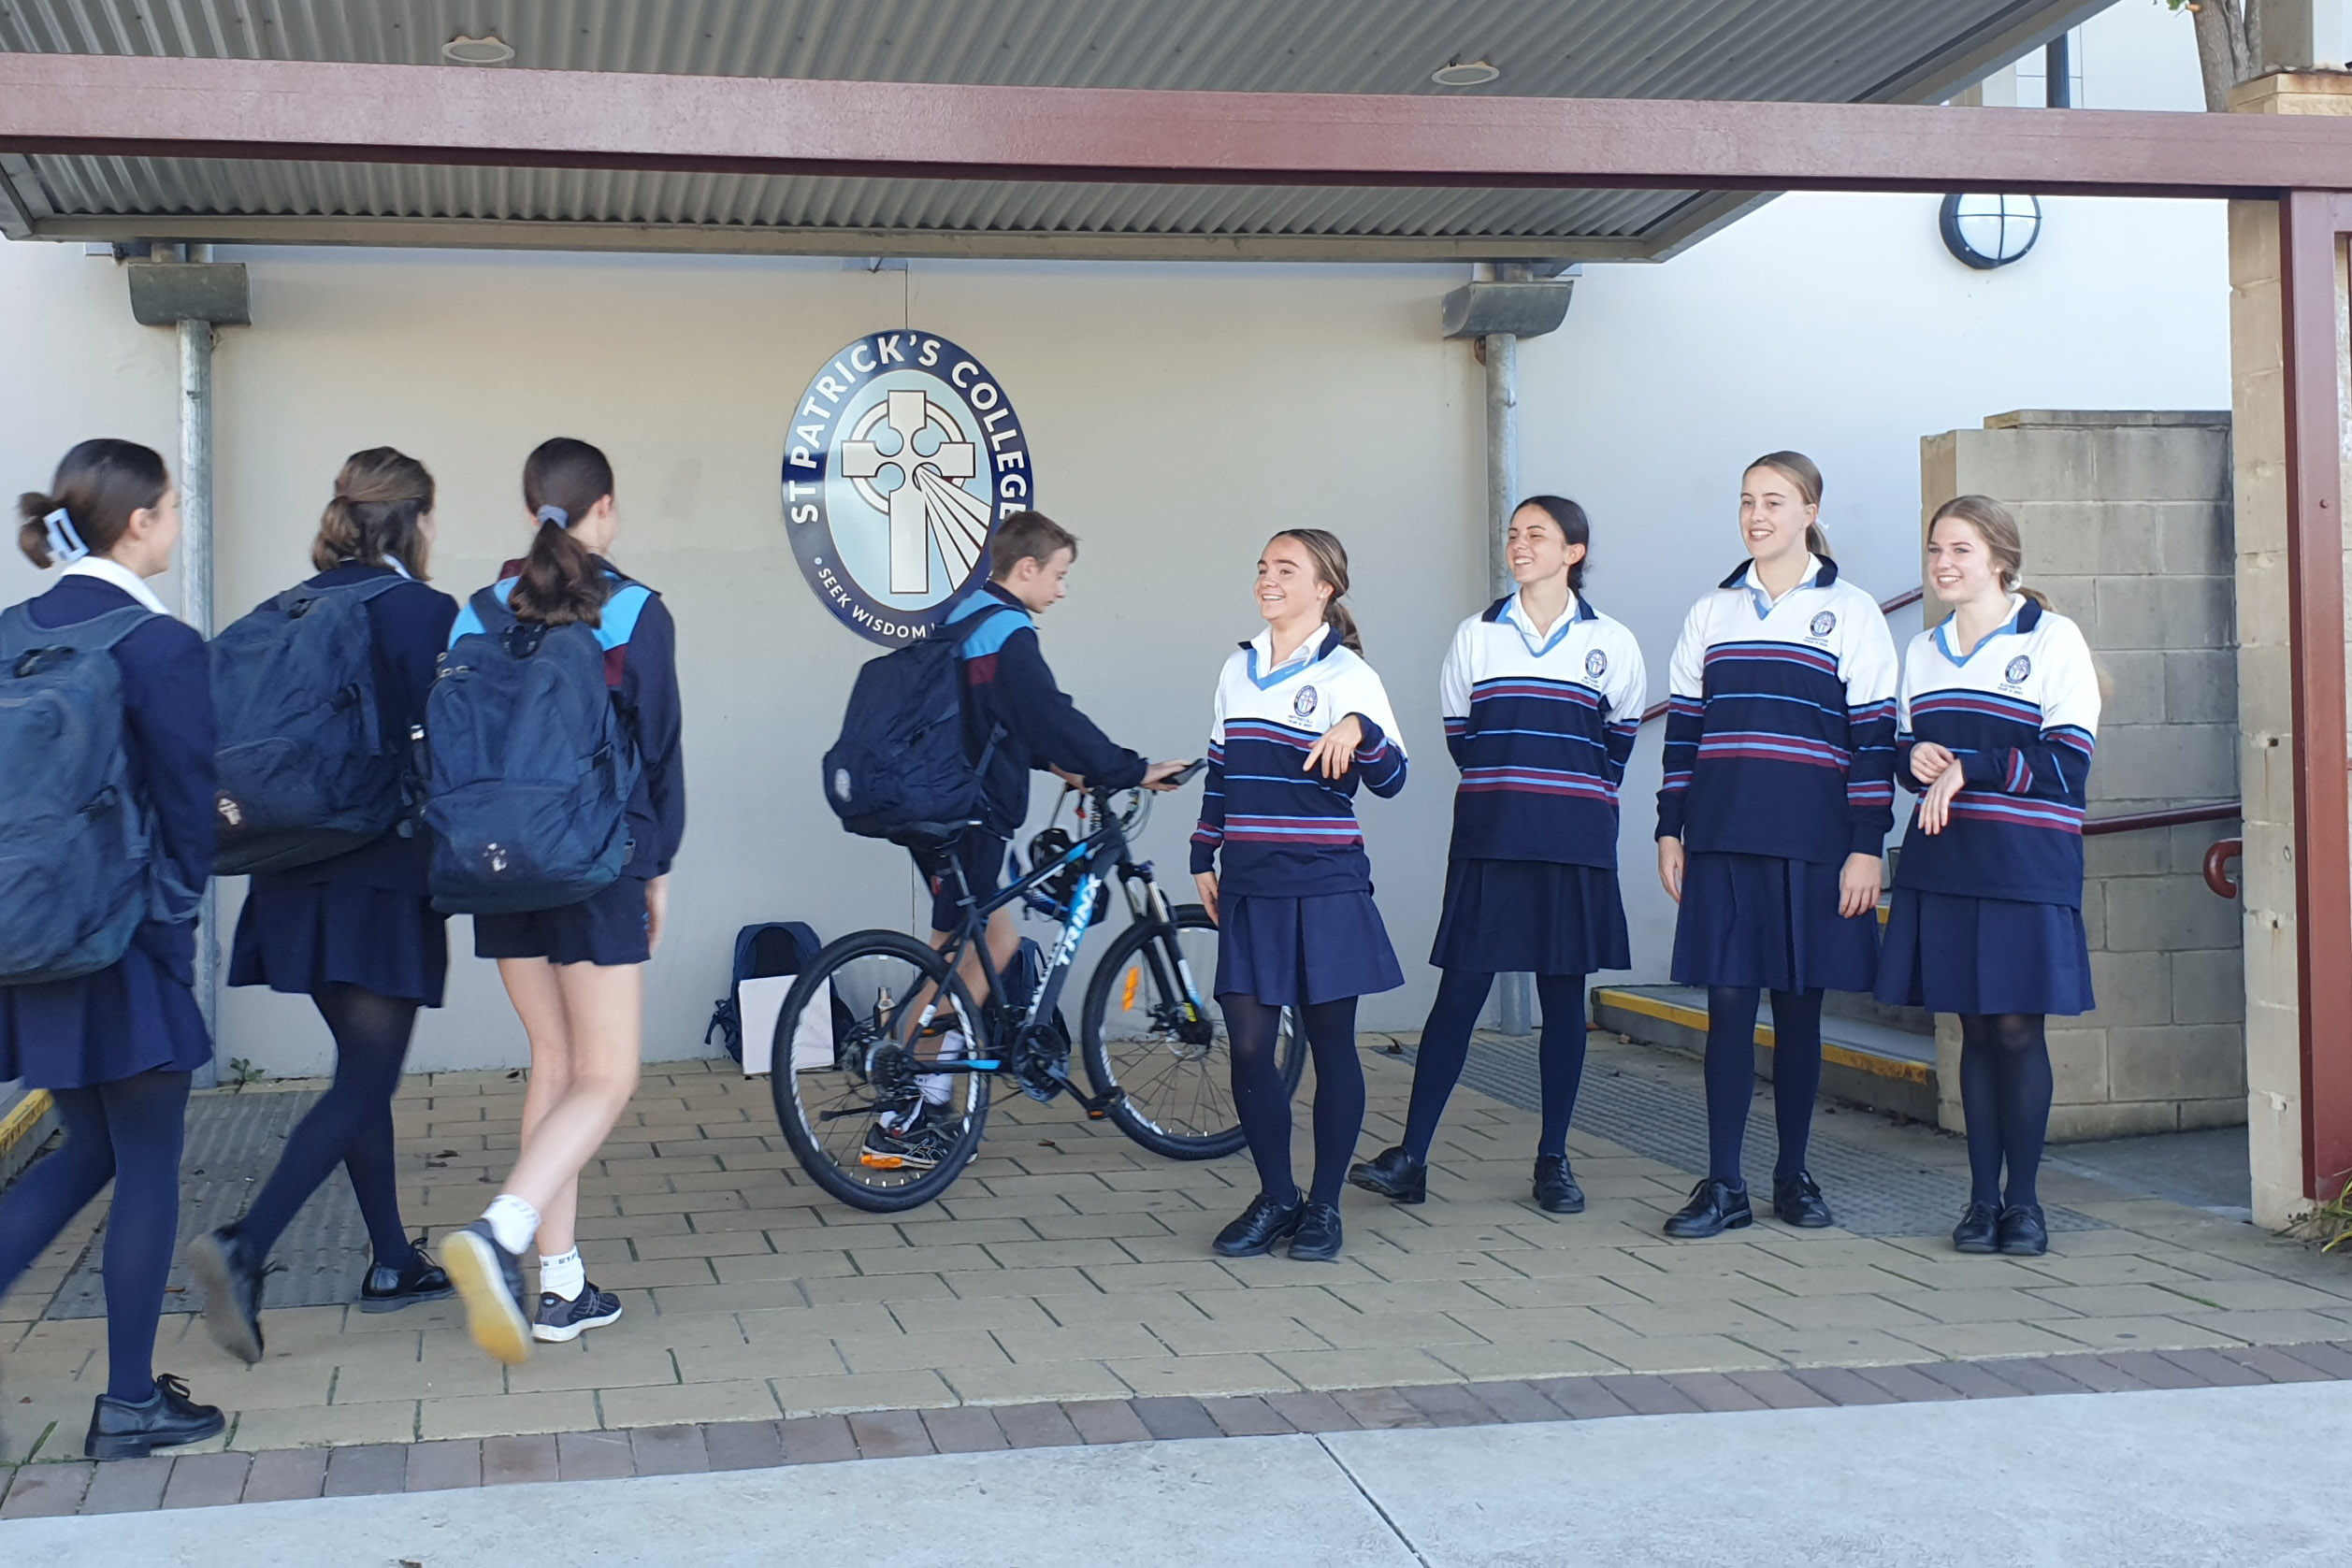 St Patrick's College students are greeted at the school gate by their student leaders on Feel Good Friday